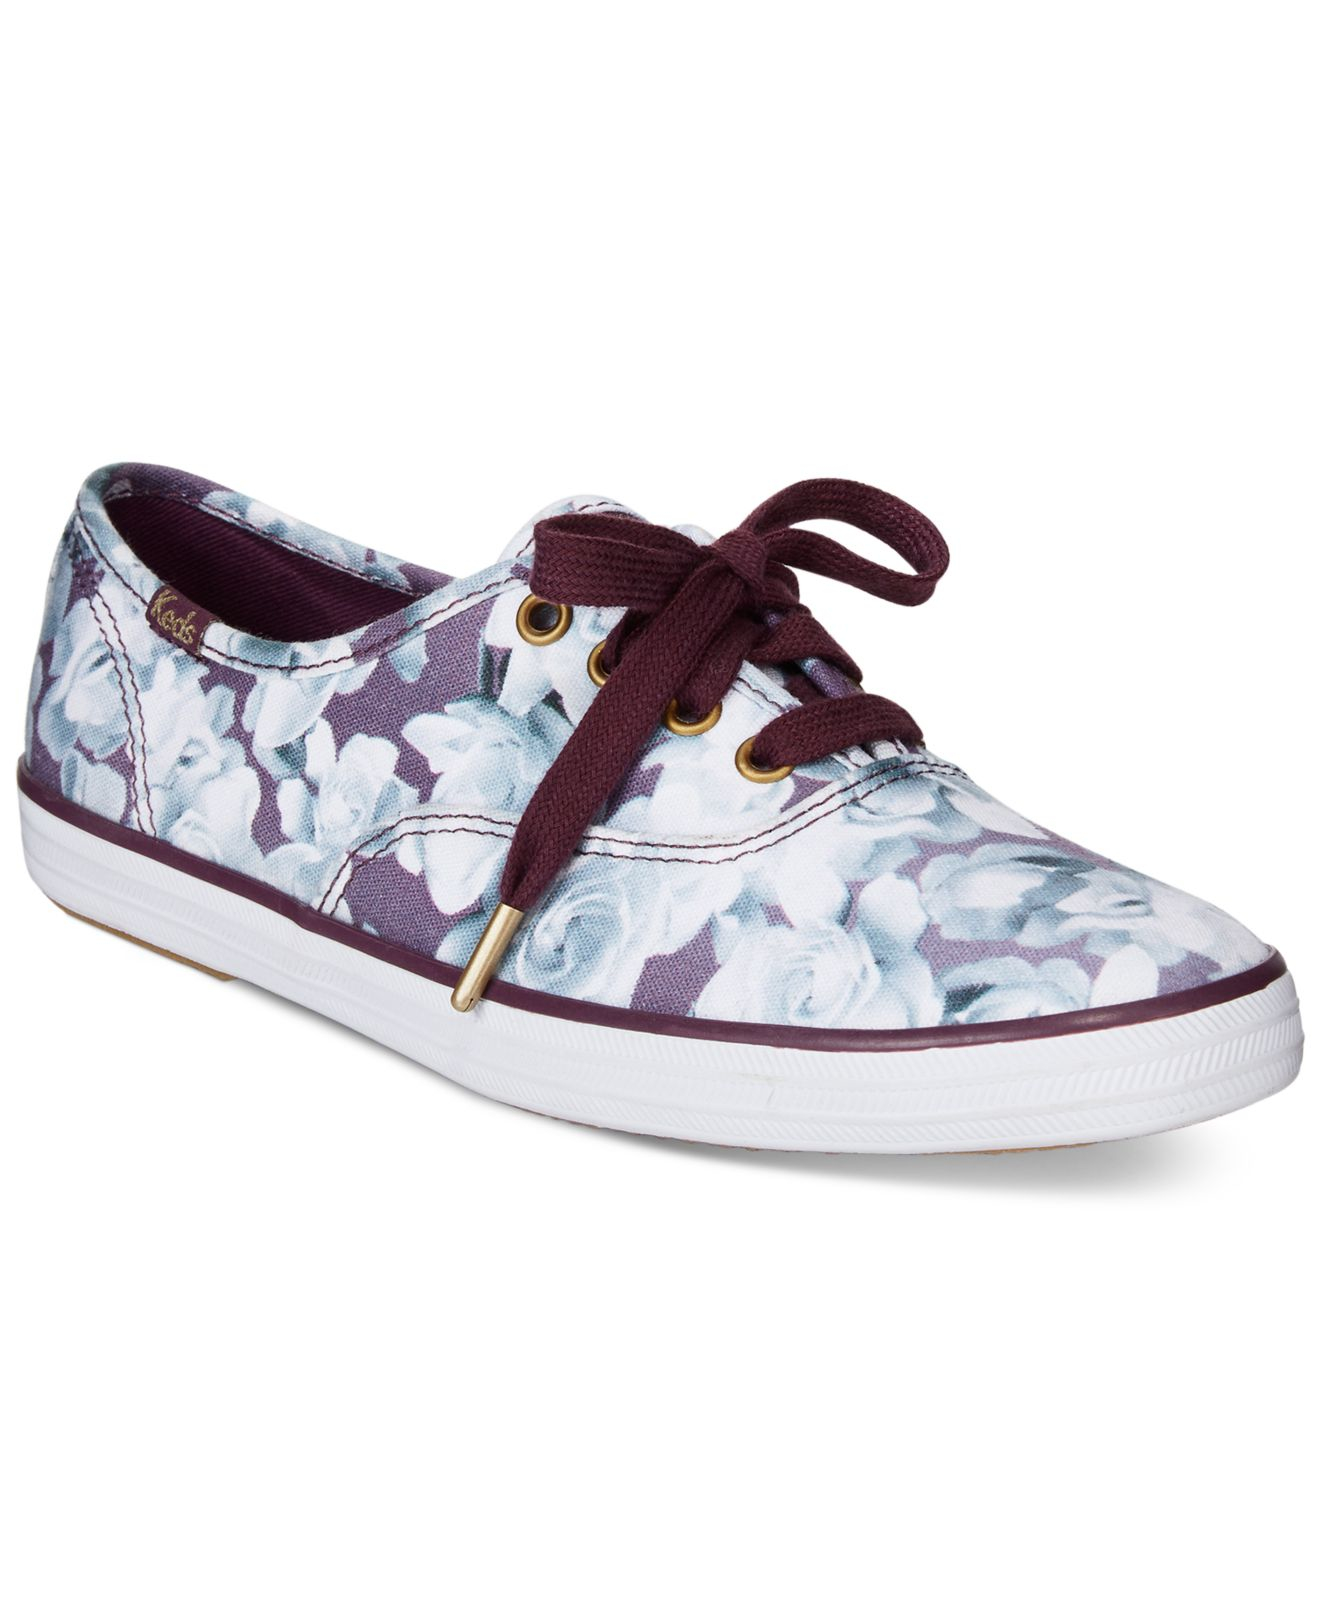 e96bd4f57b6 Lyst - Keds Women s Limited Edition Taylor Swift Champion Floral ...